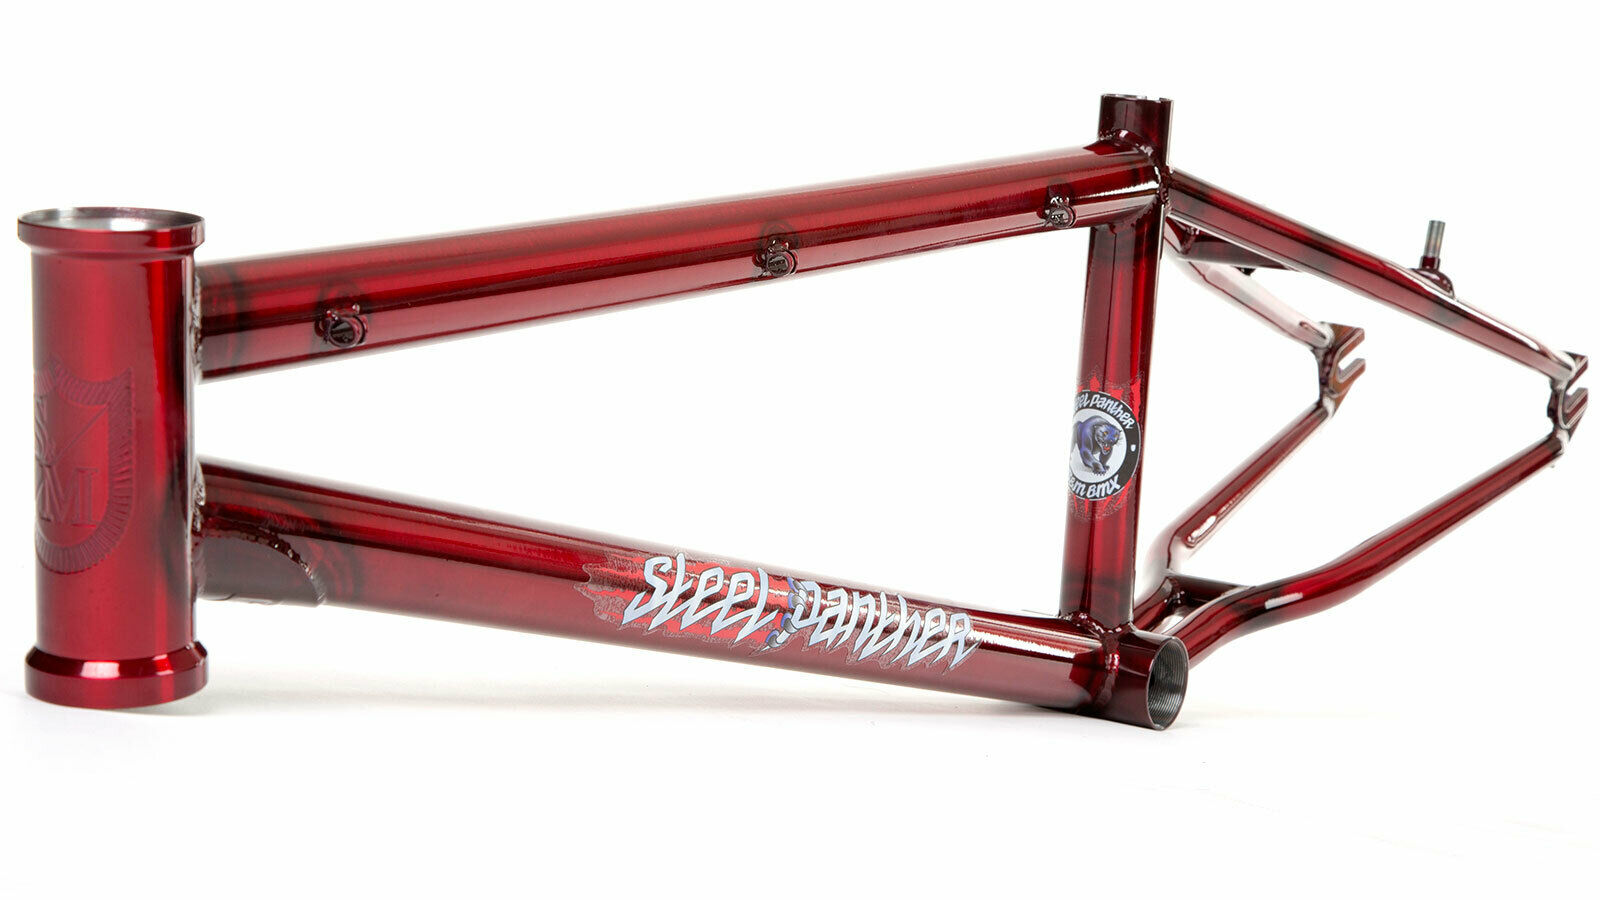 S&M BIKES STEEL PANTHER RACE FRAME TRANS CANDY rosso  21.75 BMX BIKE 21.75 RACING